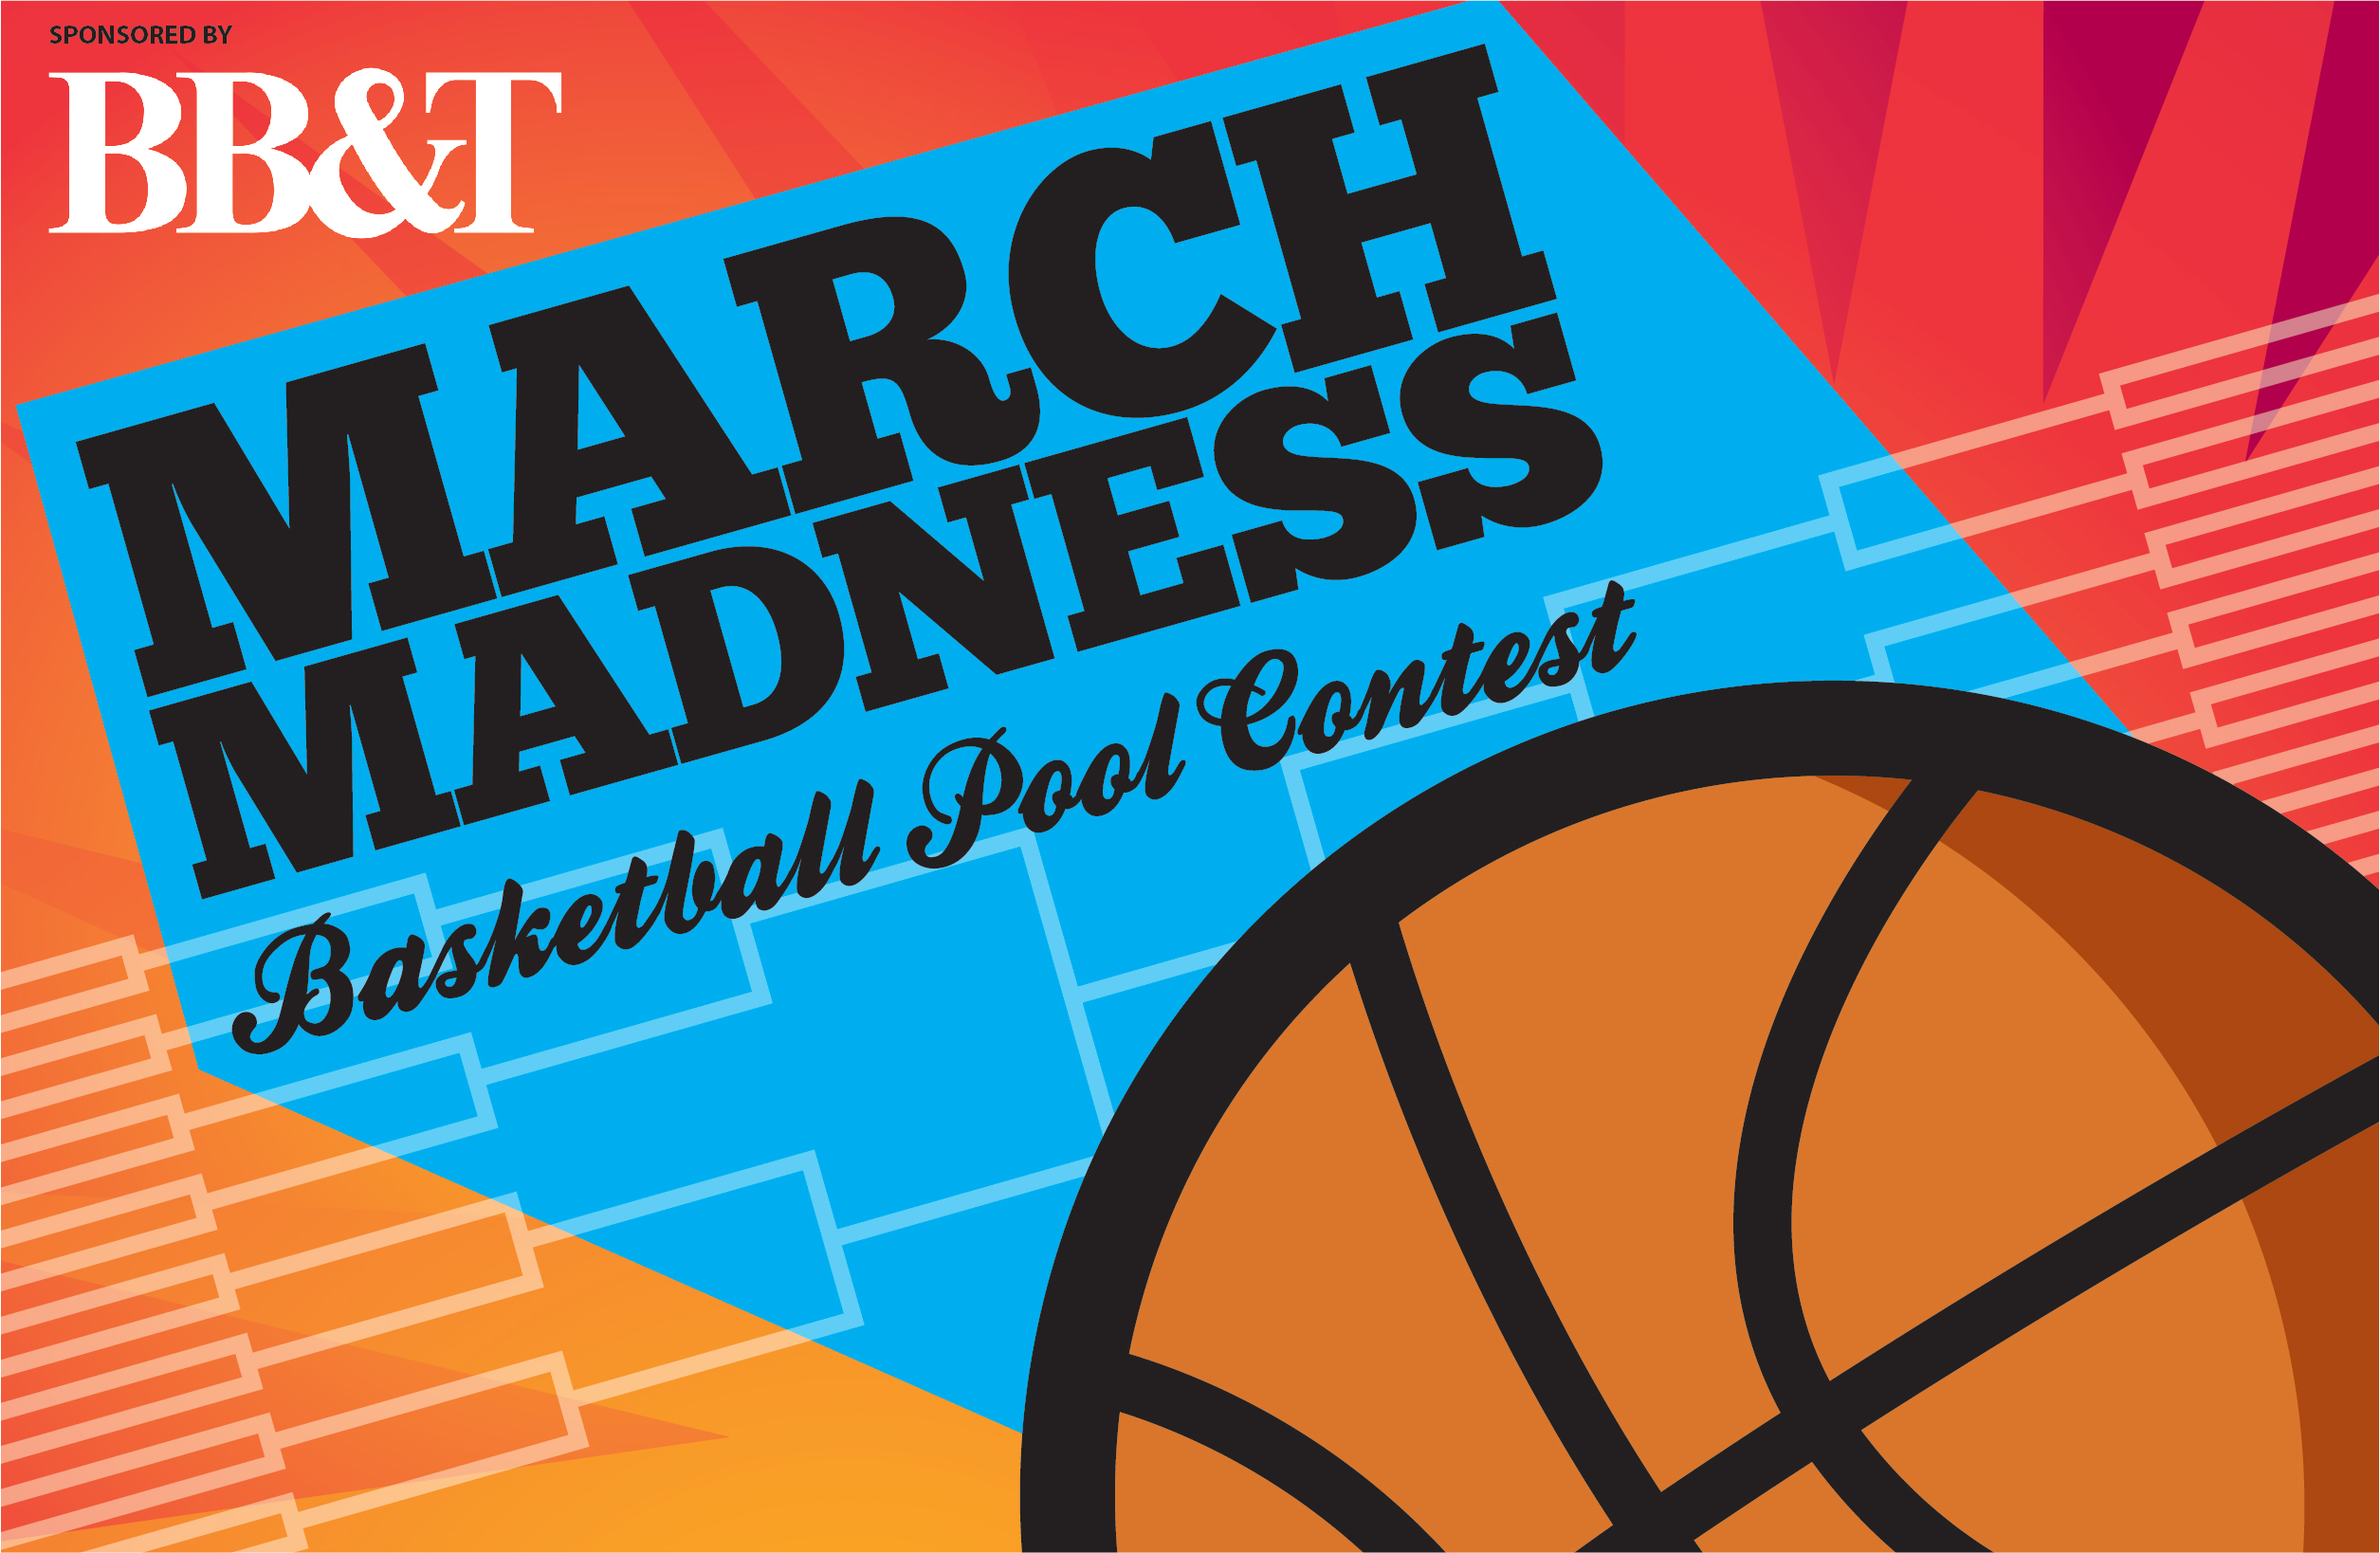 VISTA Today Announces Winner of Its NCAA Tournament Challenge Presented by BB&T